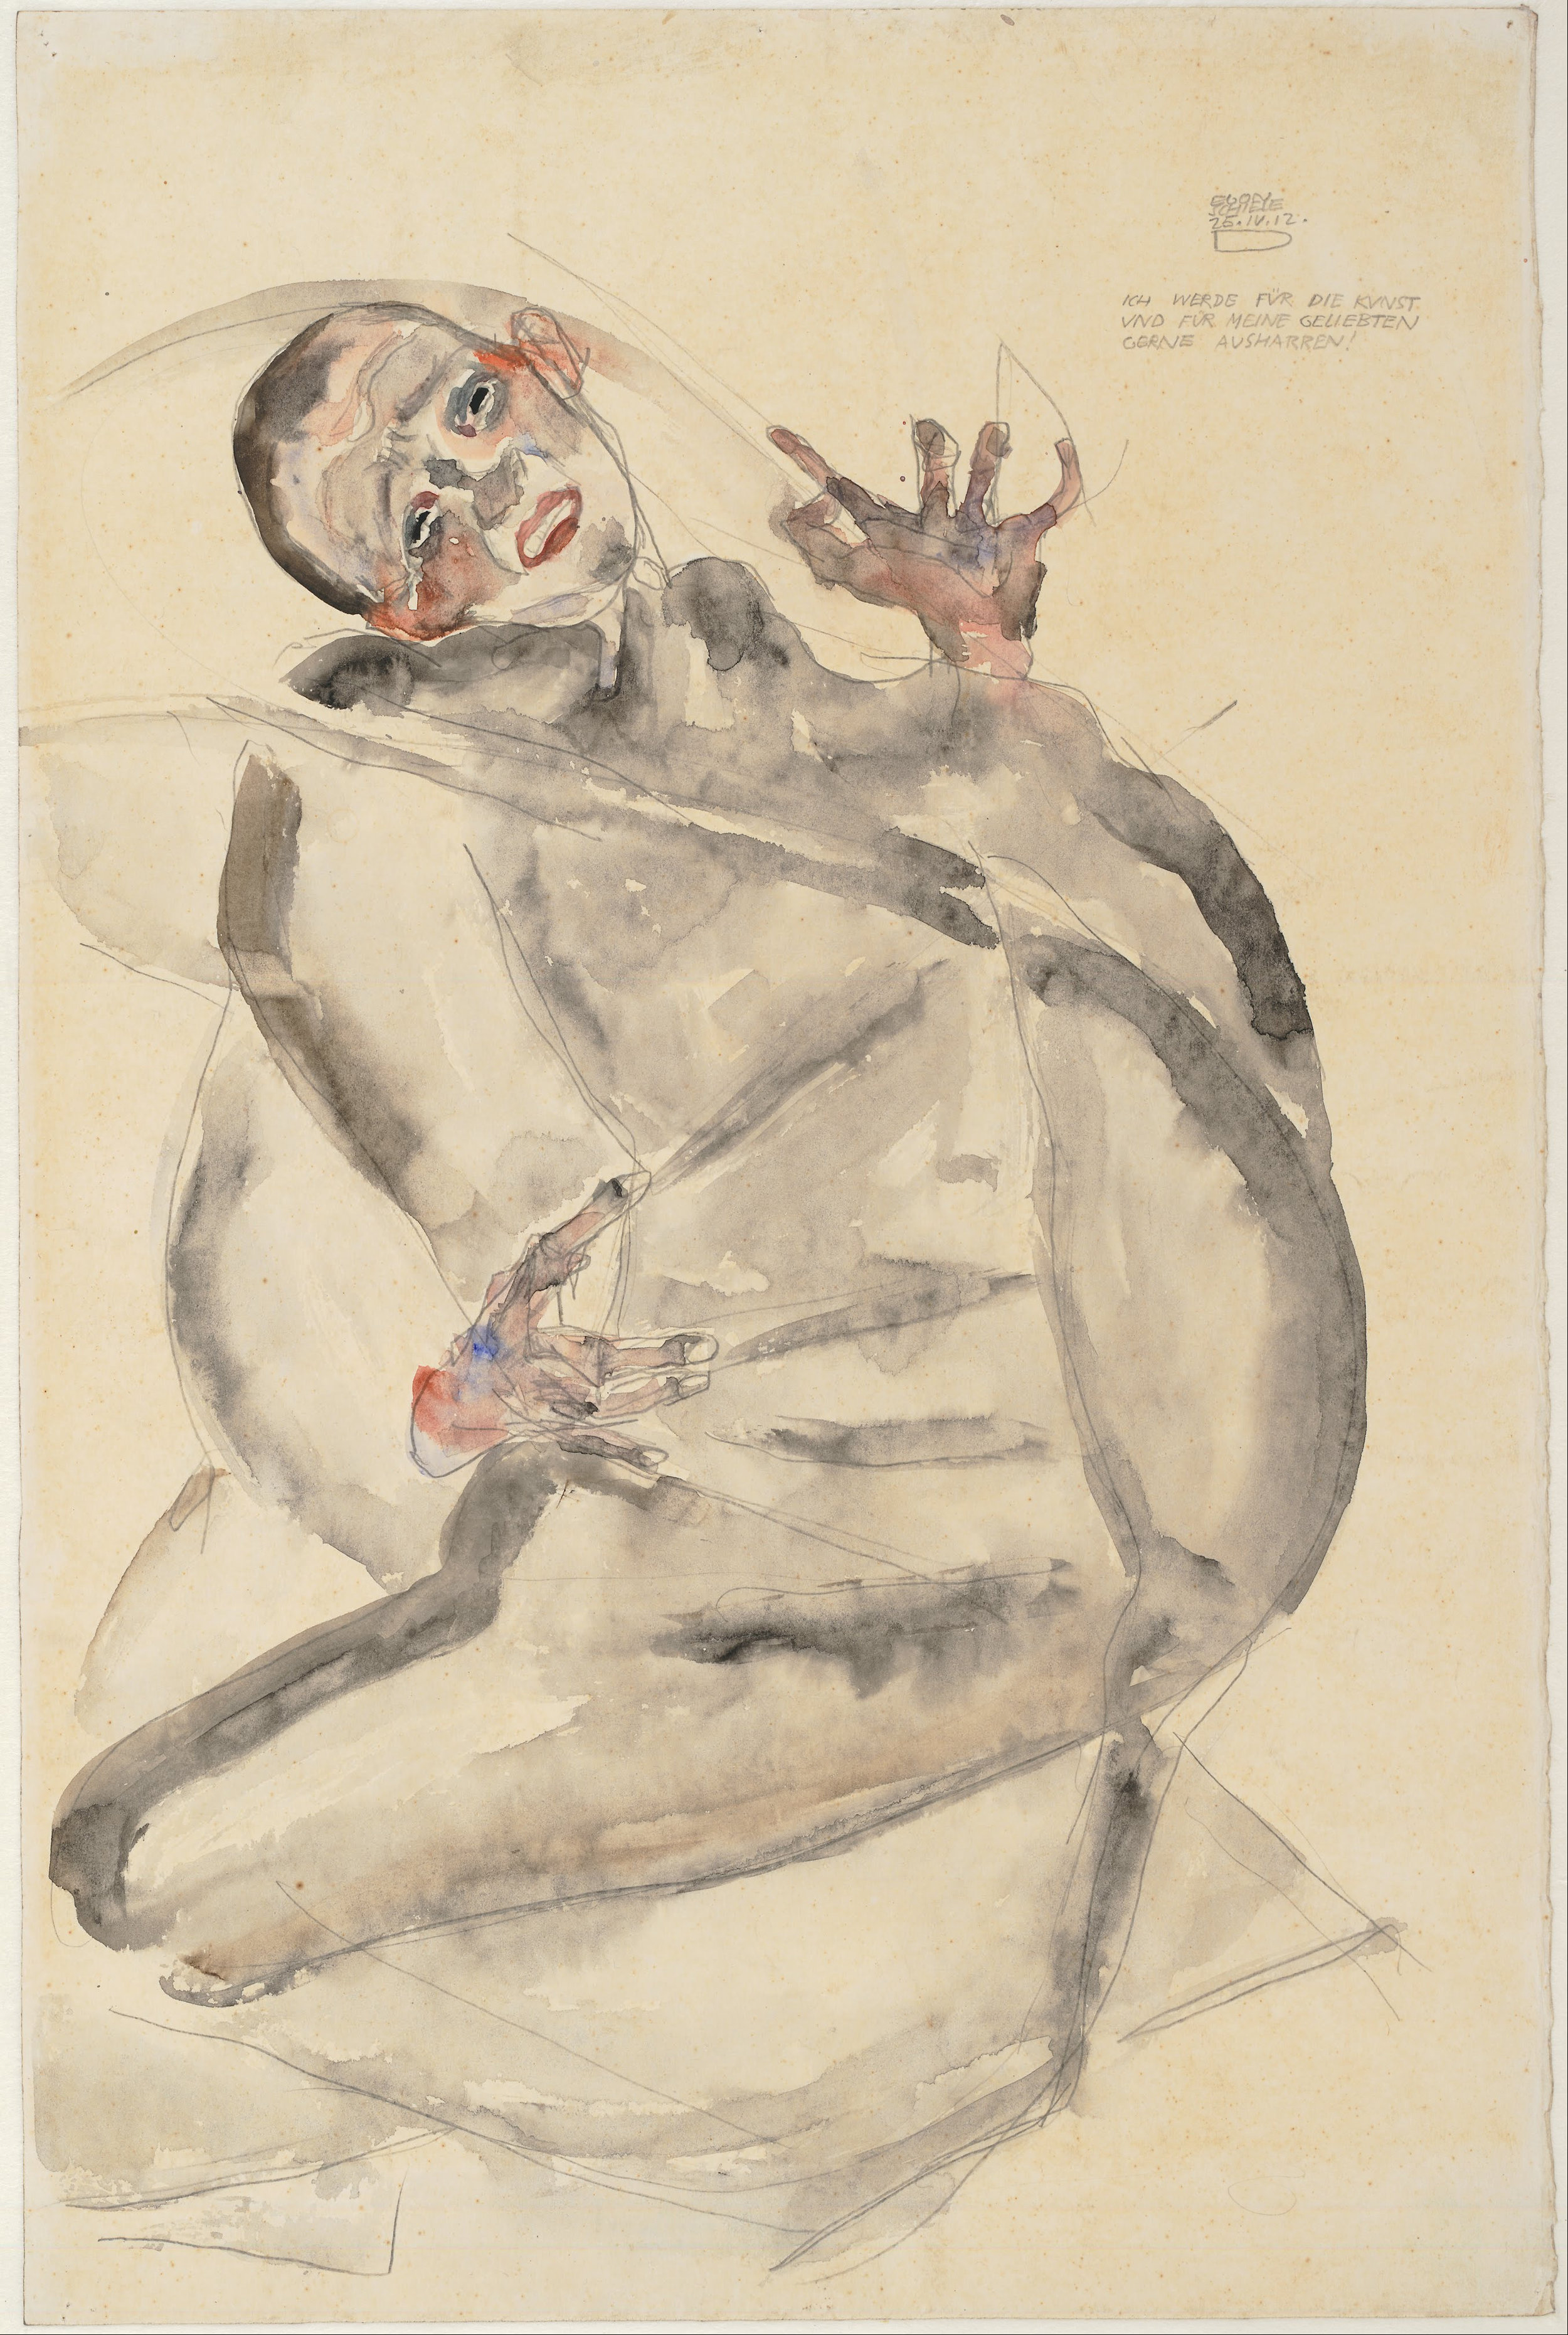 """Egon Schiele, """"I Will Gladly Endure for Art and My Loved Ones I Will Gladly Endure the End!"""" (1912)"""